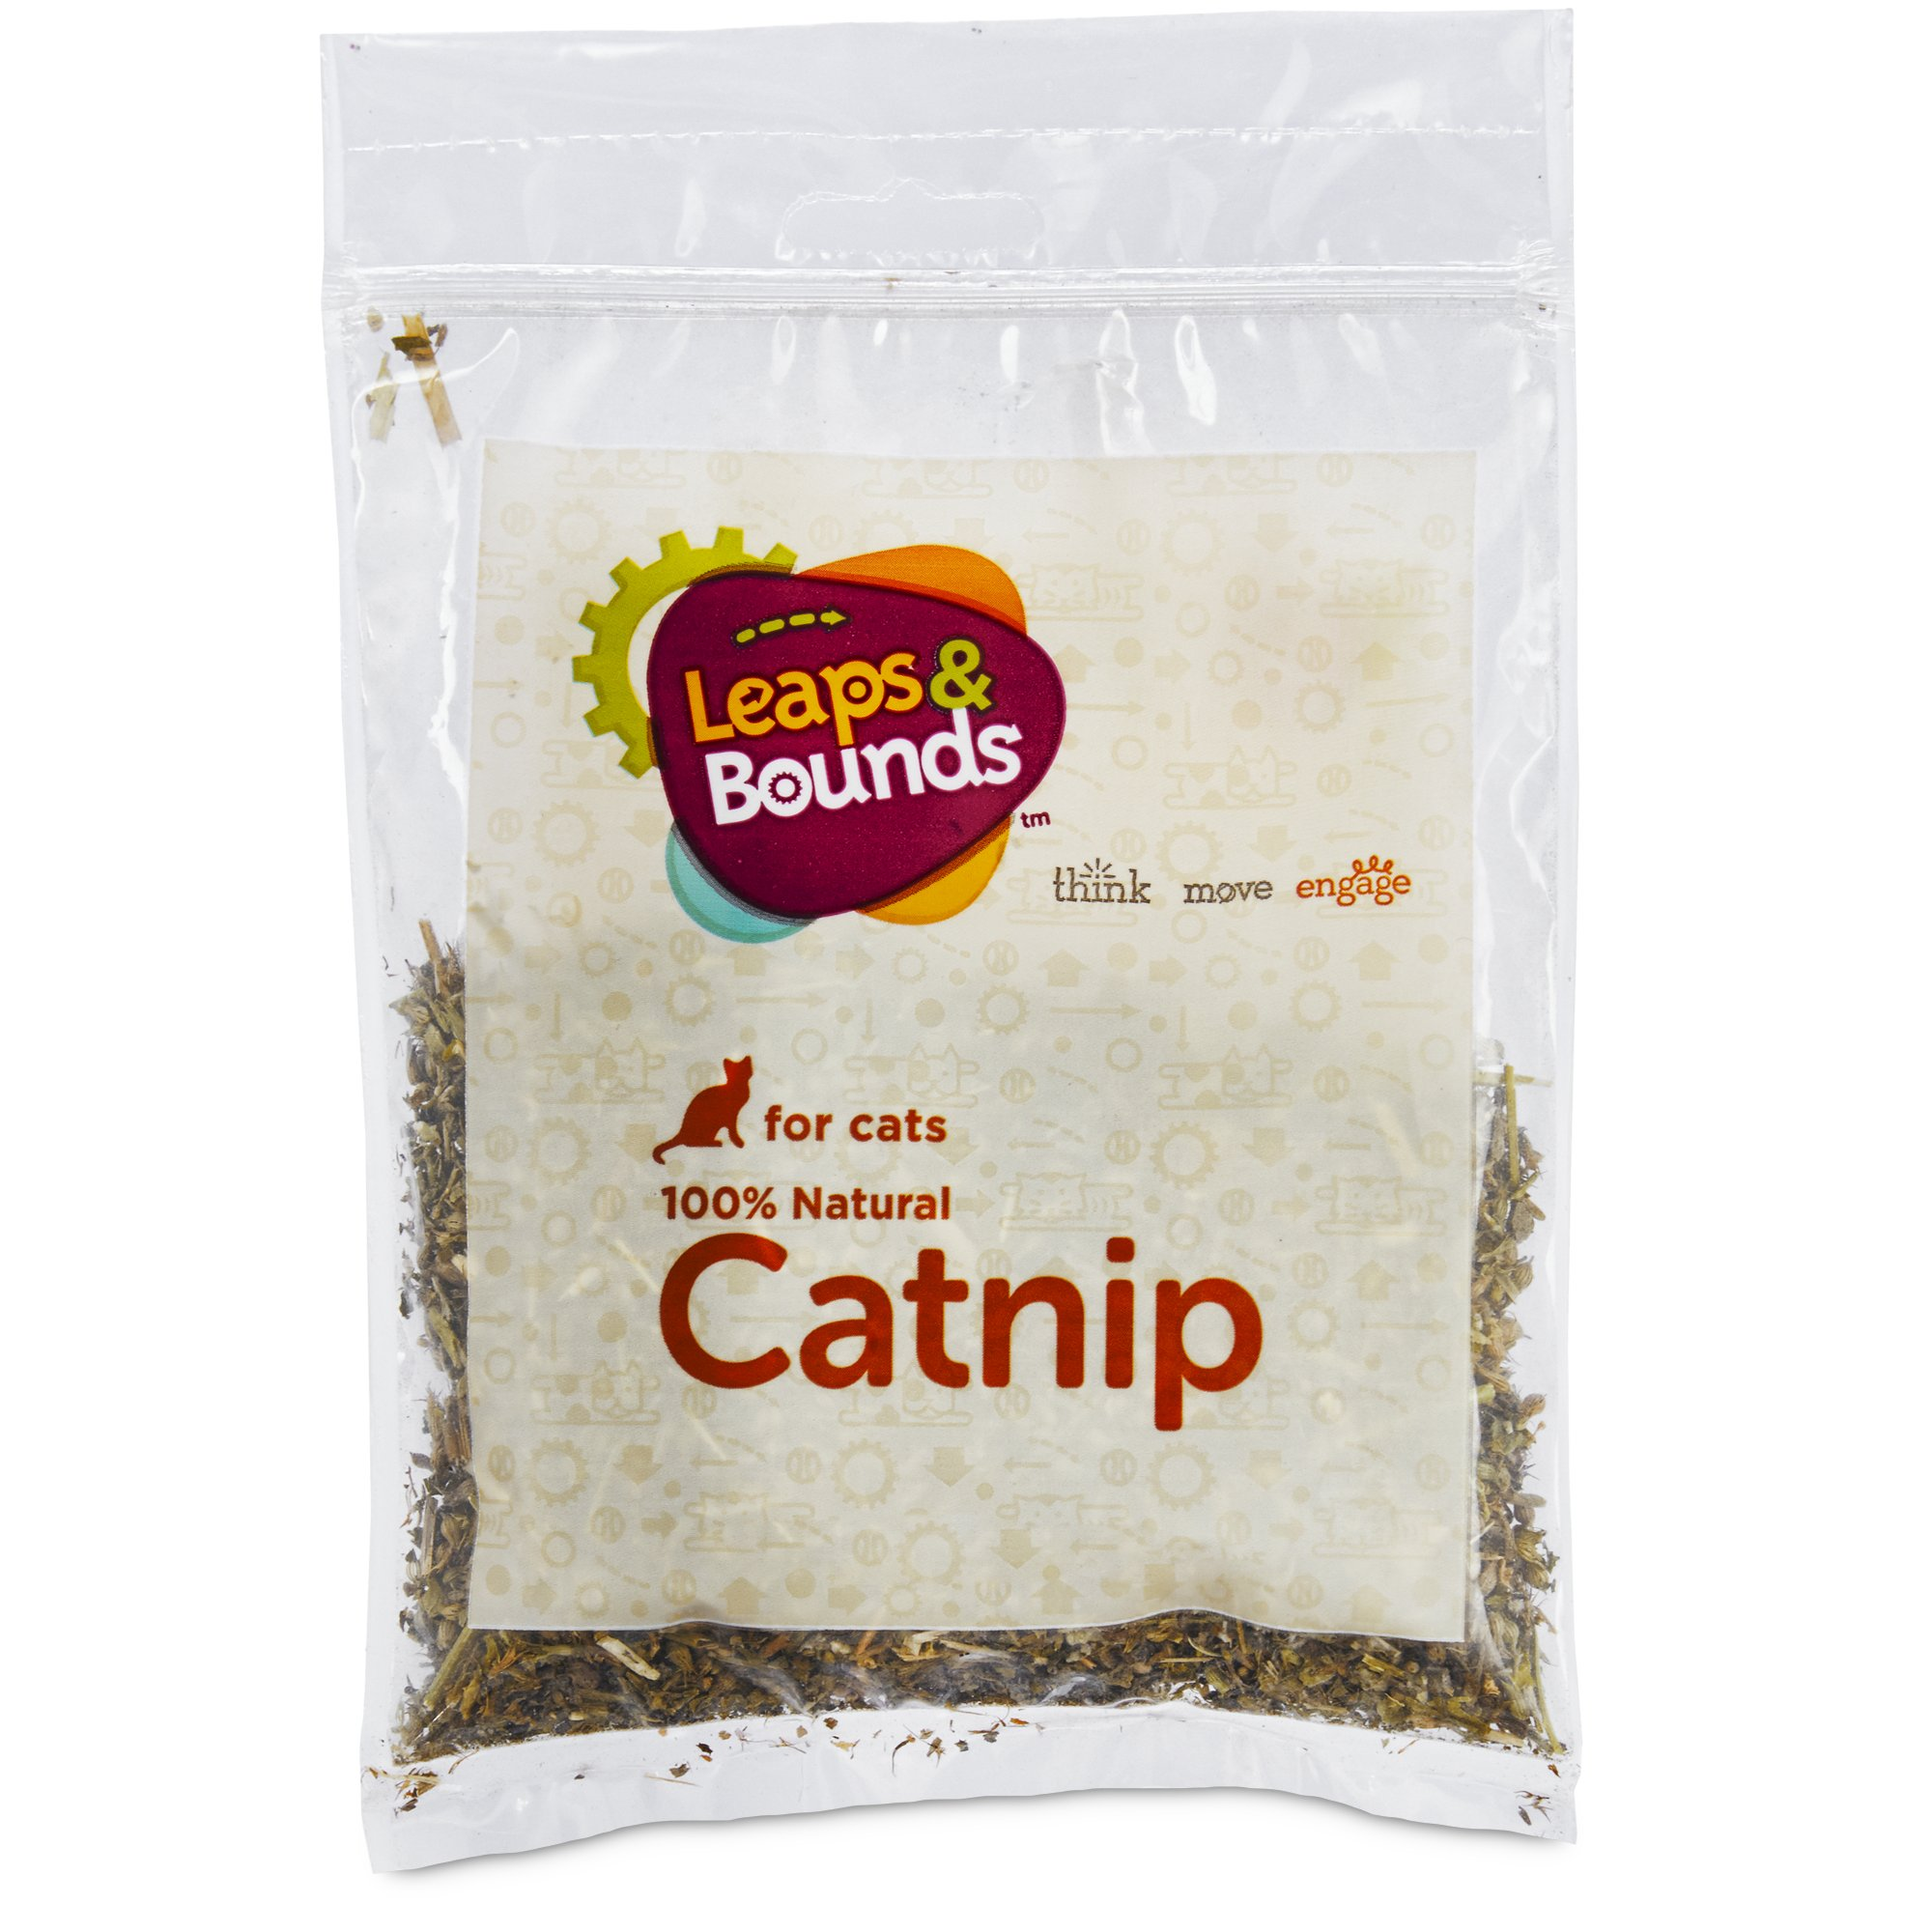 Image of Leaps & Bounds 100% Natural Catnip, 0.5 oz.